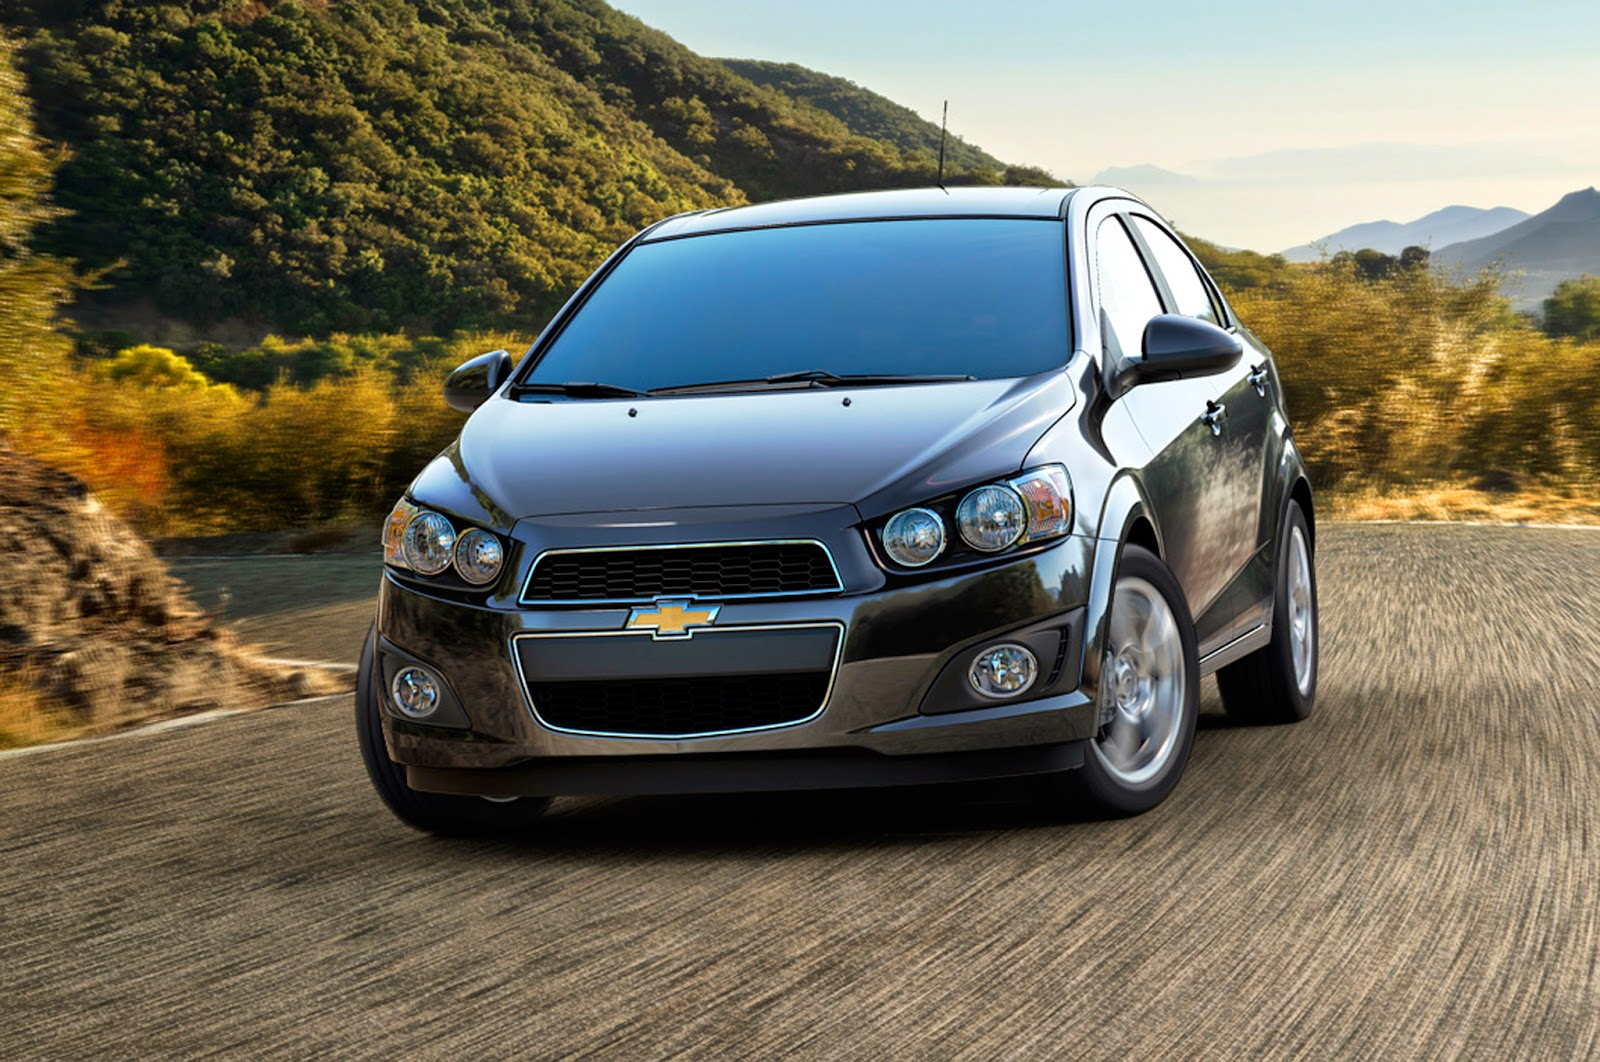 Jesslie 2014 Chevrolet Aveo Hatchback Difference With